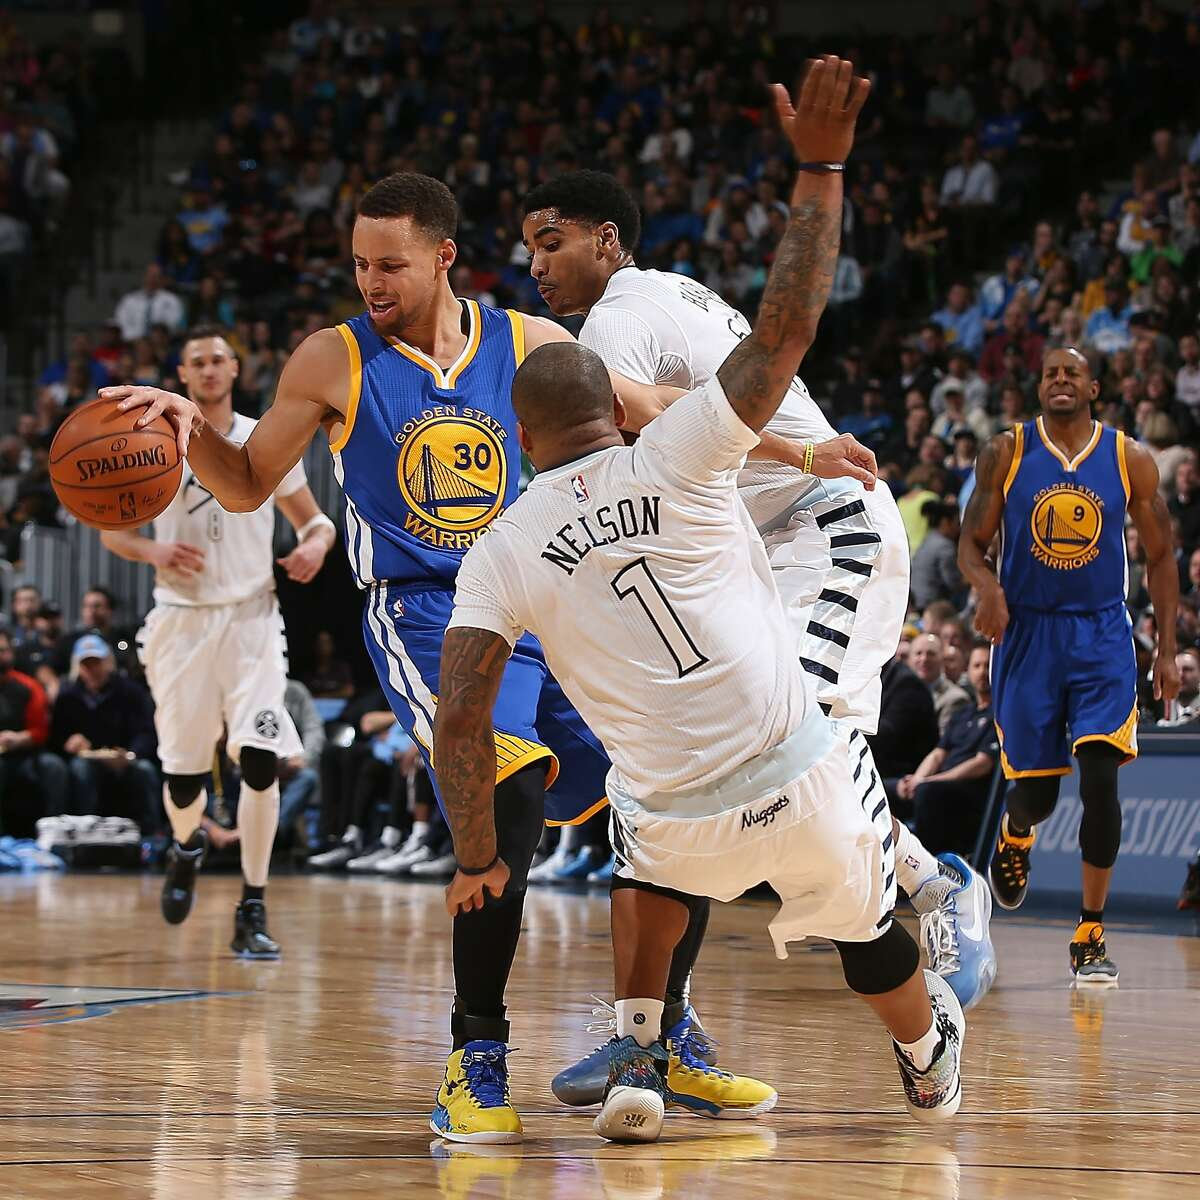 Stephen Curry #30 of the Golden State Warriors tries to retain control of the ball against the defense of Jameer Nelson #1 and Gary Harris #14 of the Denver Nuggets at Pepsi Center on January 13, 2016 in Denver, Colorado.